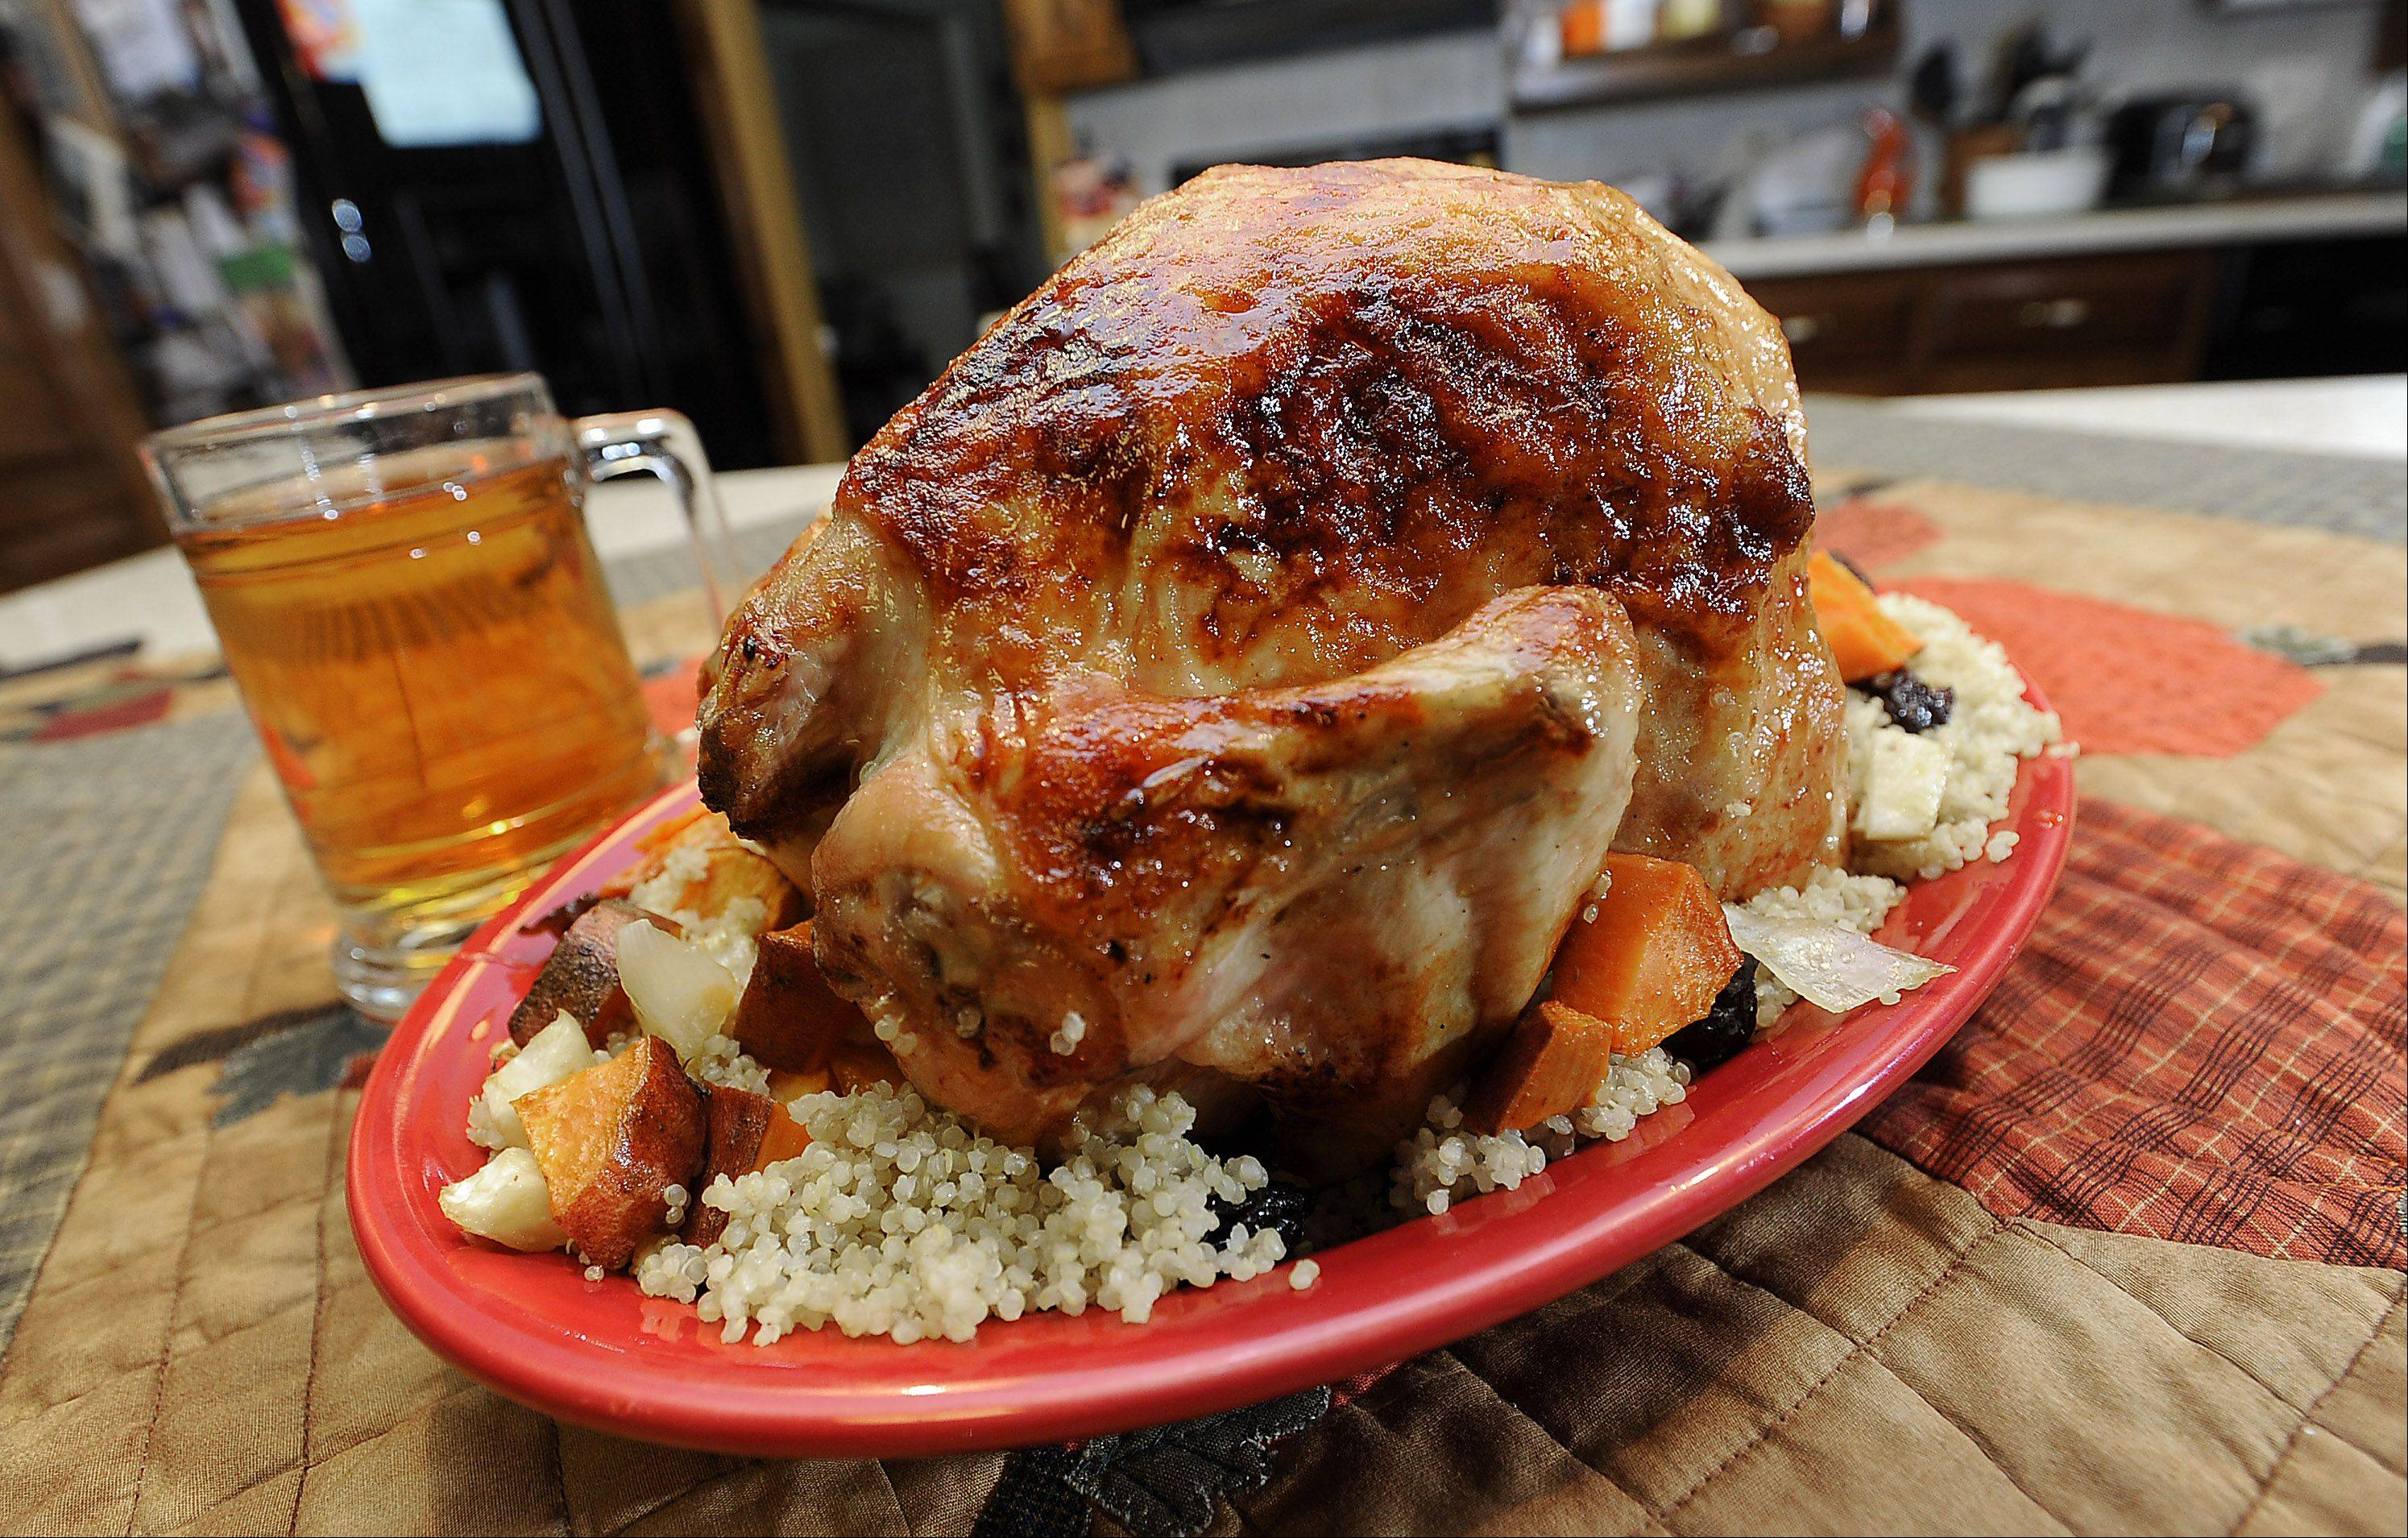 Michelle Abraham cooked a whole chicken beer-can style and served roasted celeriac and quinoa, dried plums on the side.